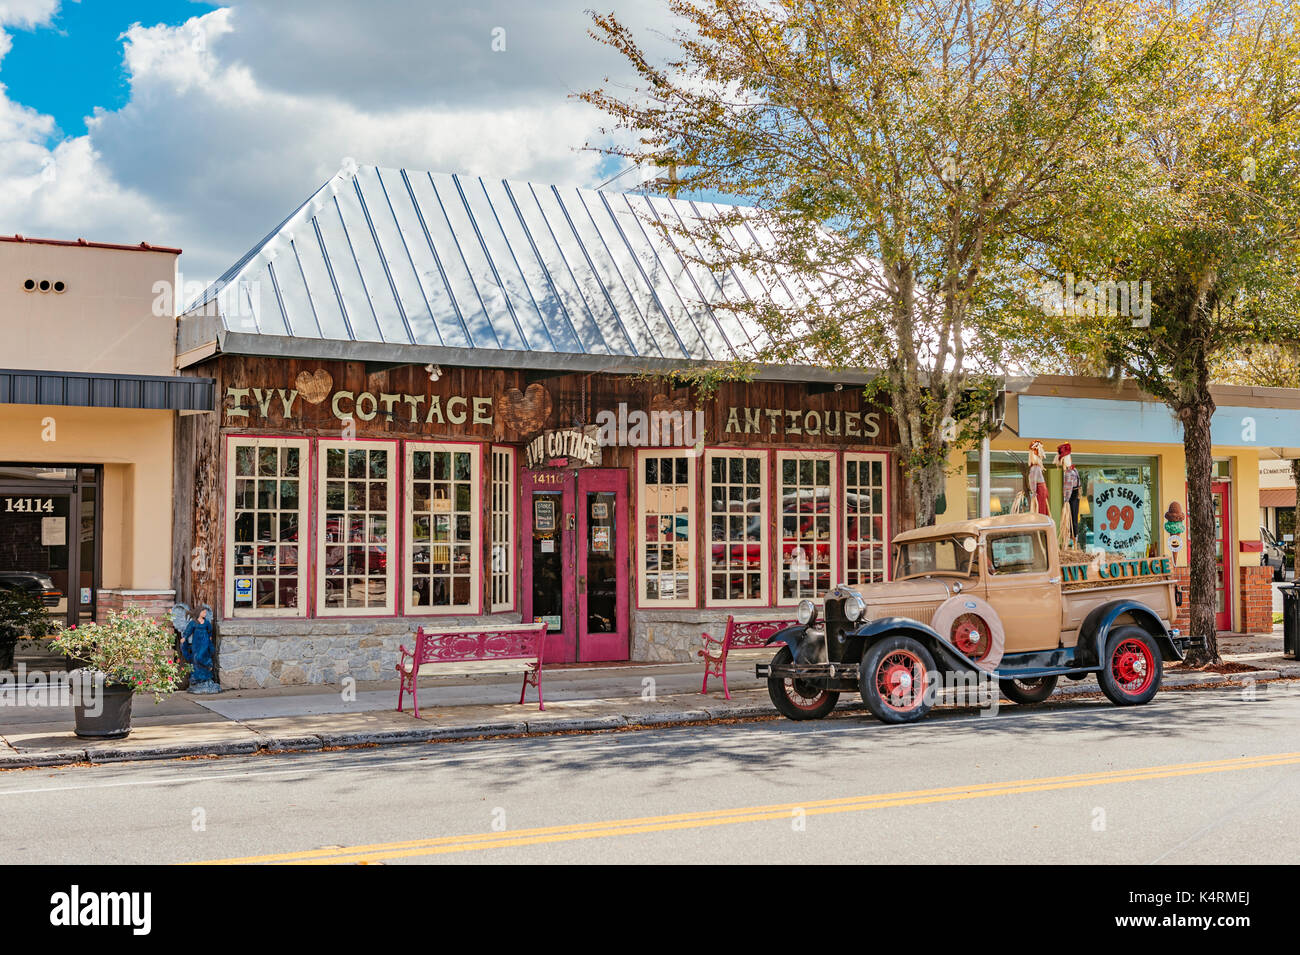 The Ivy Cottage Antiques store in Dade City, Florida, USA, with a vintage Model A Ford pick up truck parked in front. - Stock Image